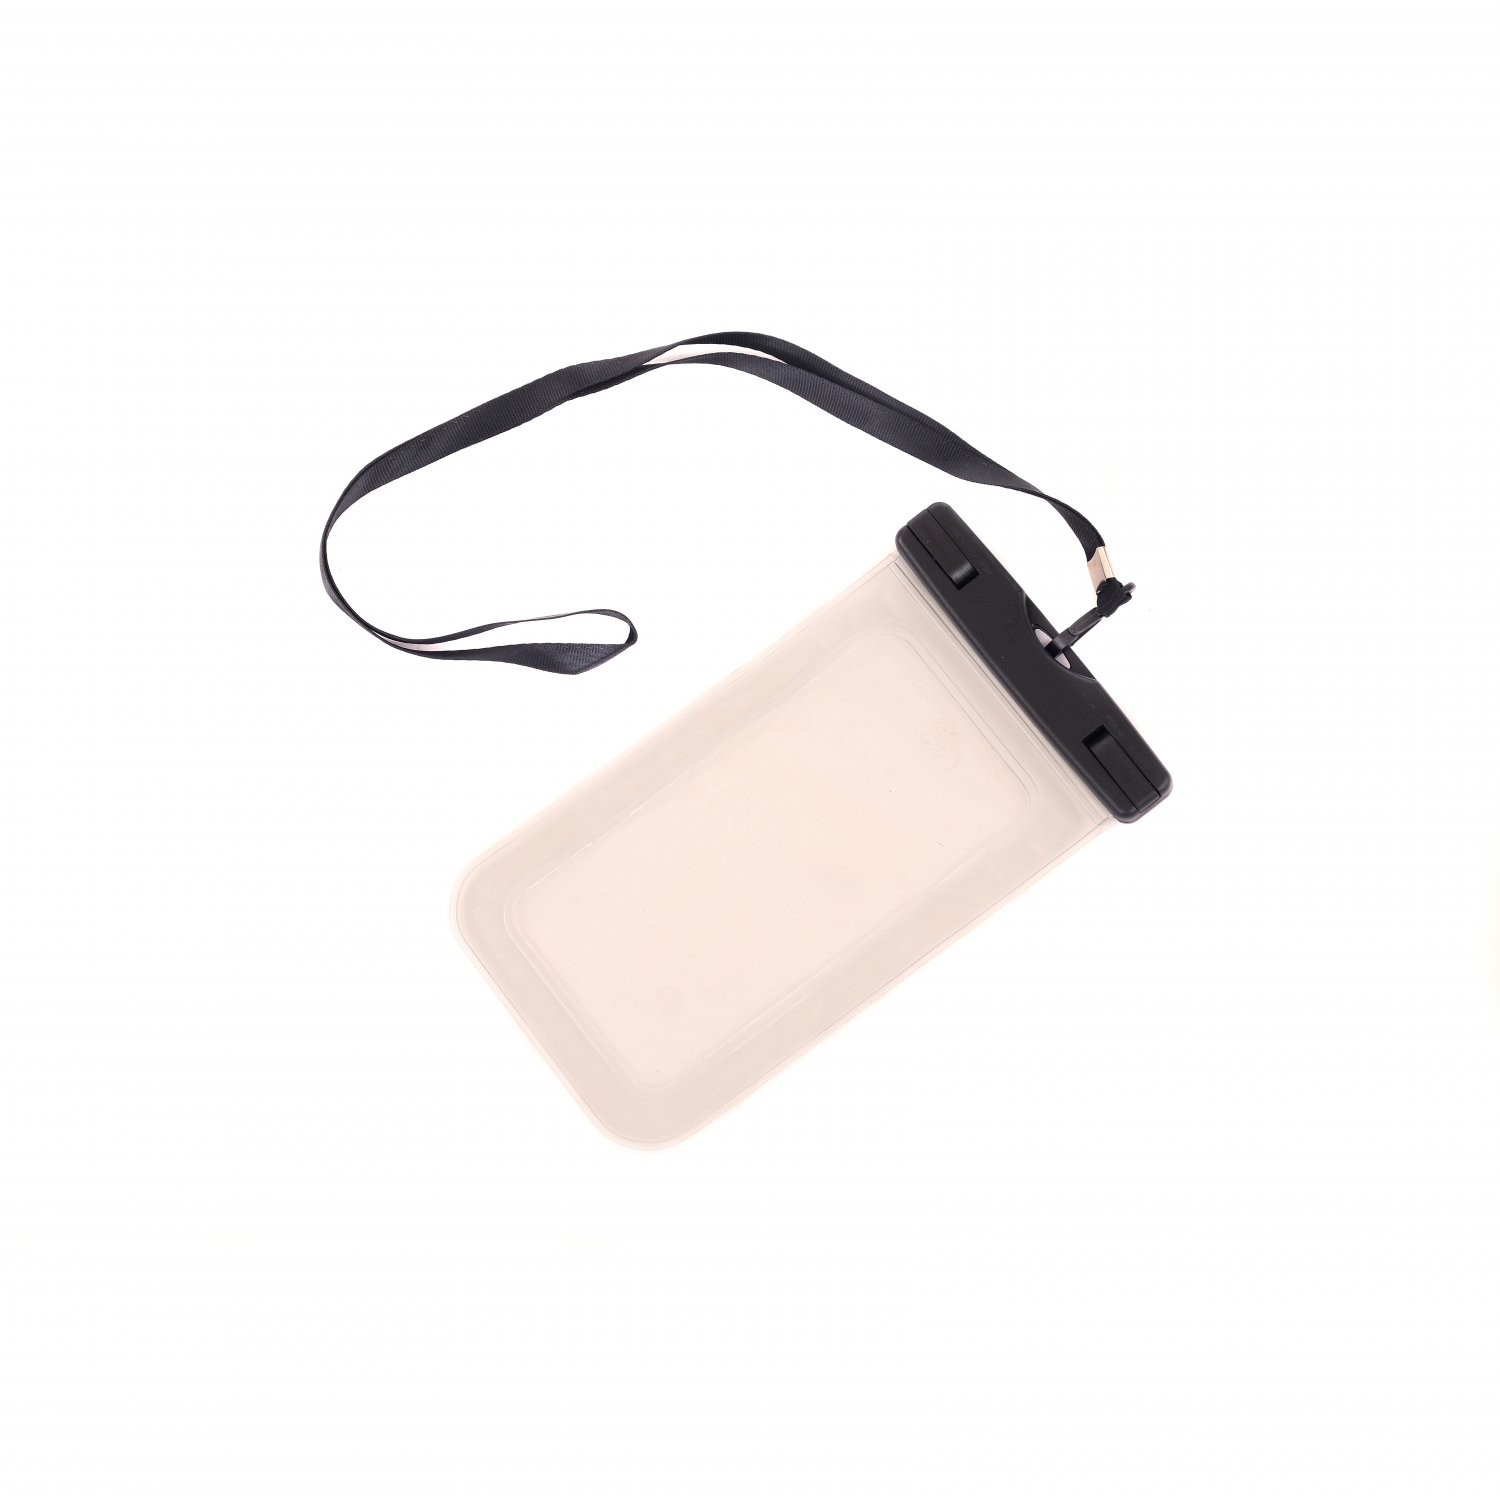 Universal Waterproof Phone Pouch Case Dry Bag with Lanyard